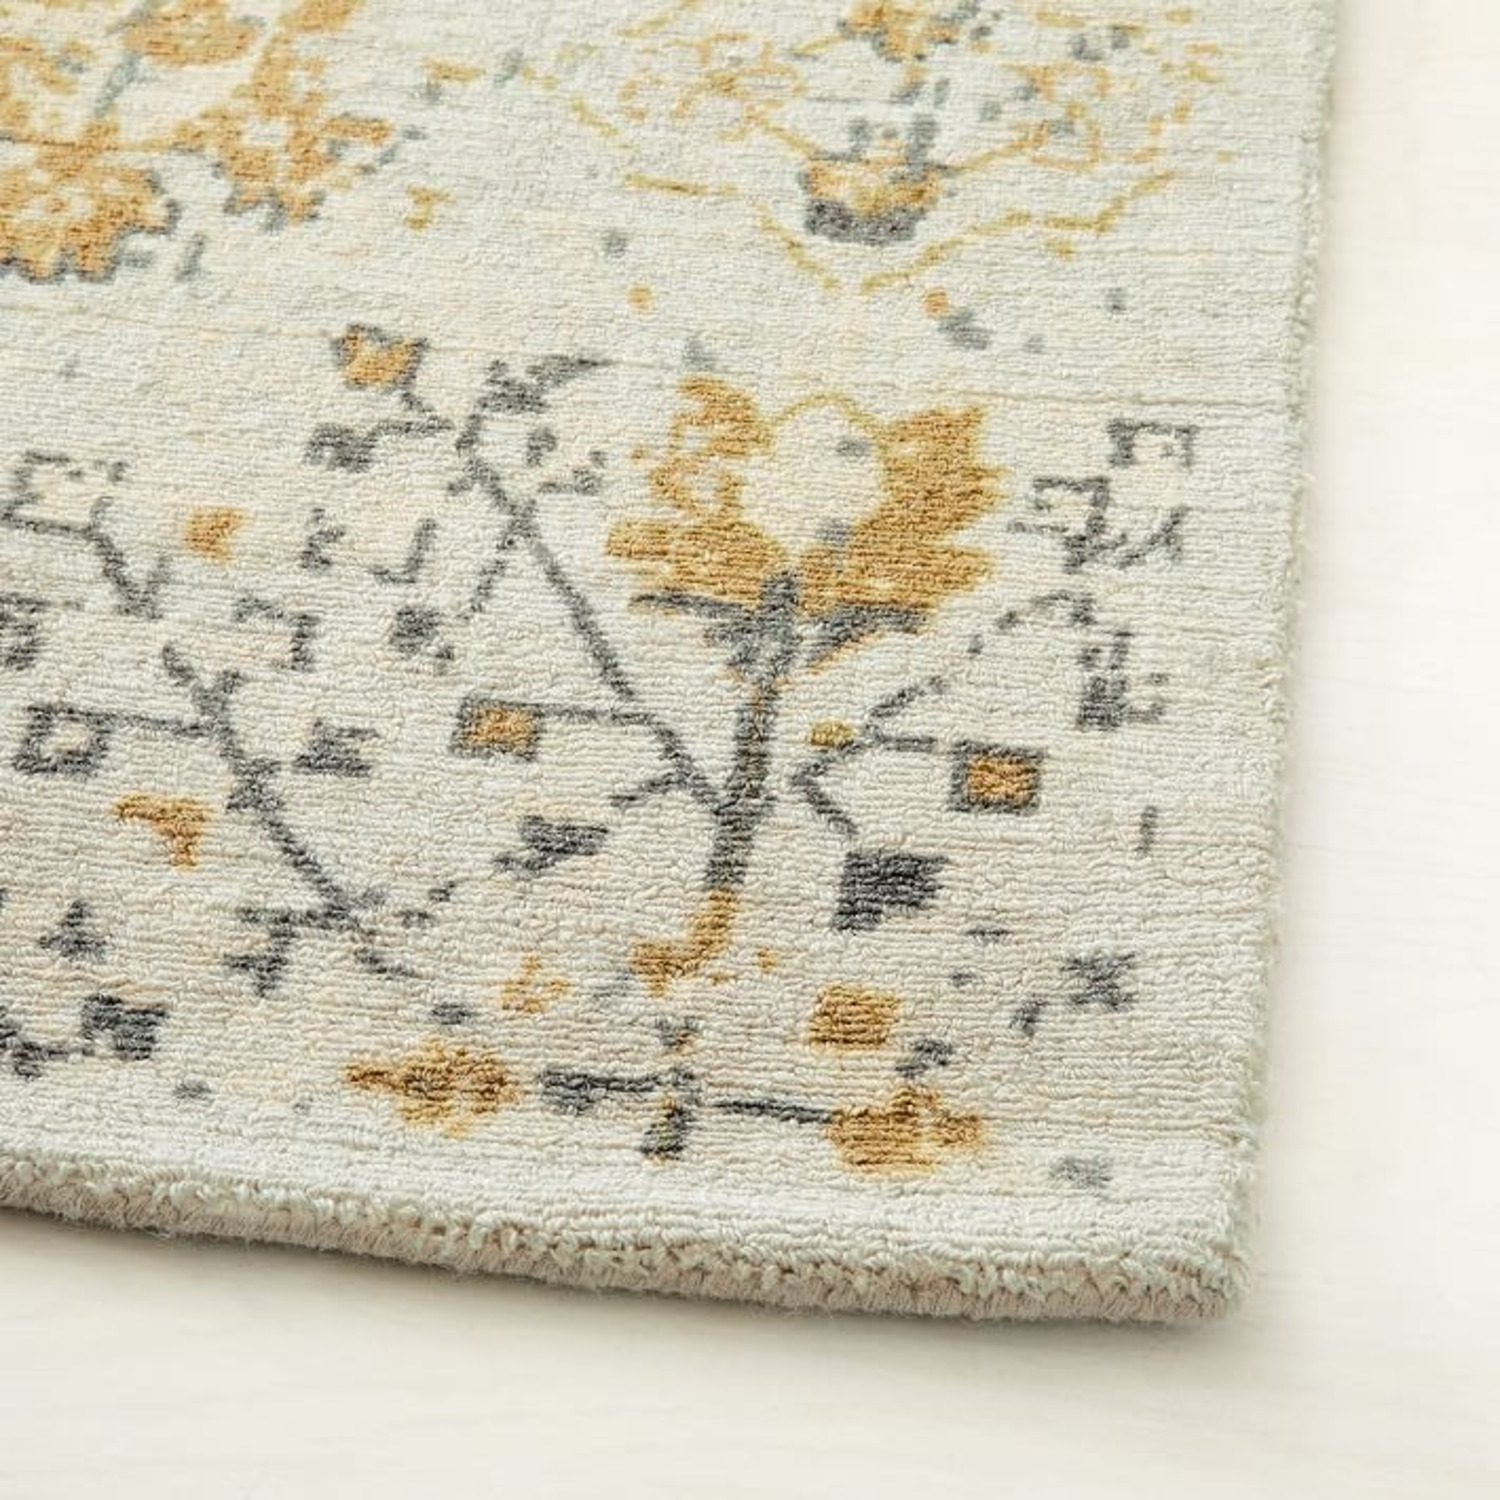 West Elm Printed Canopy Rug, Frost Gray - image-3